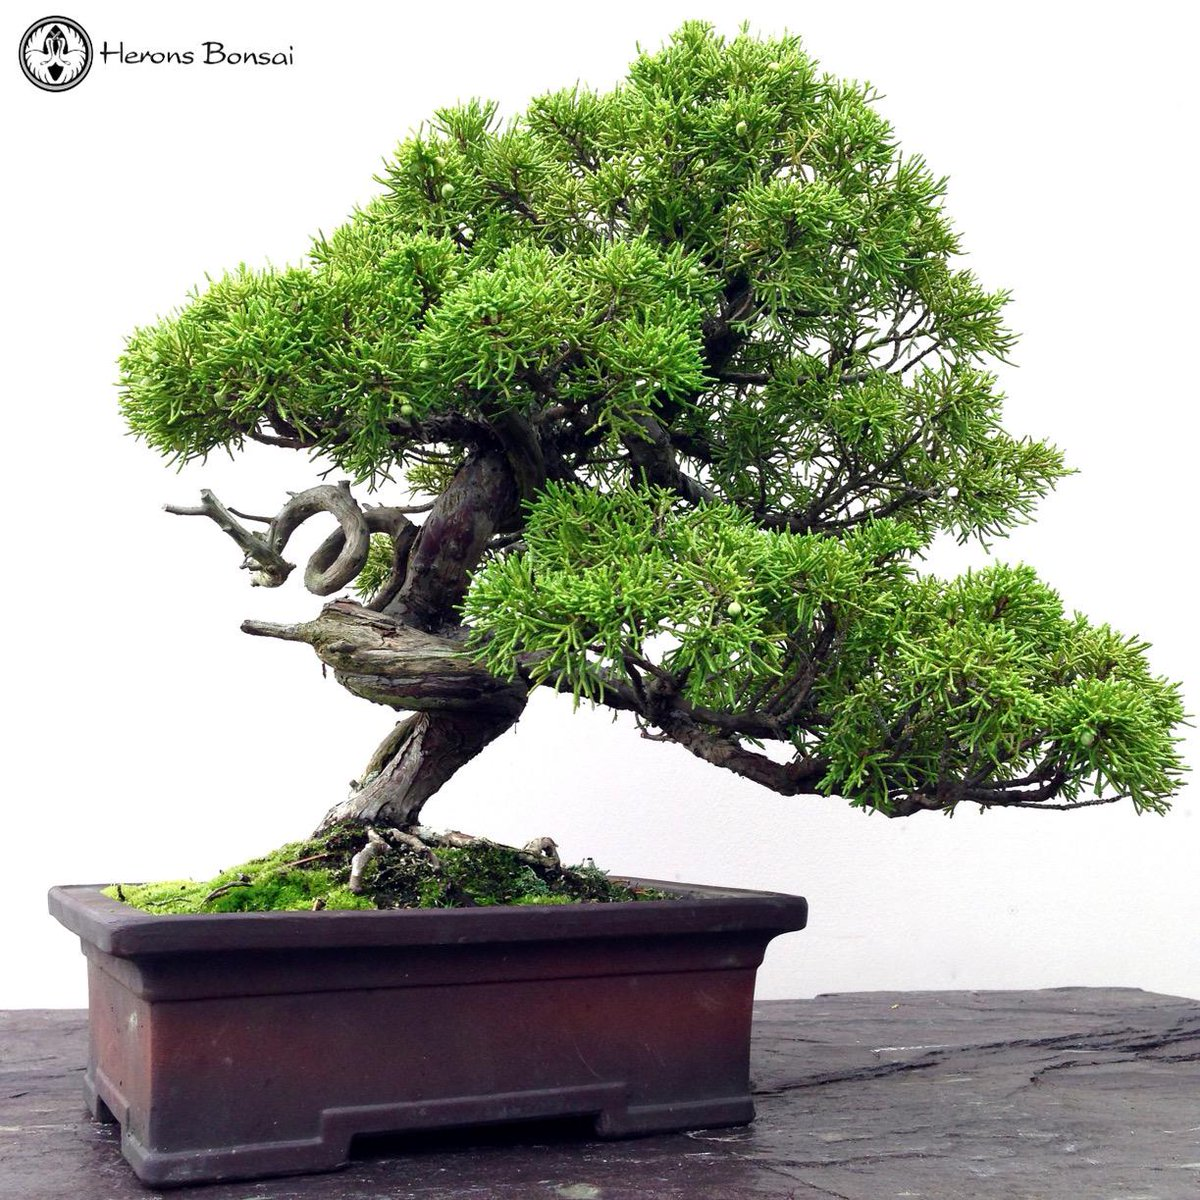 Herons Bonsai On Twitter Chinese Juniper Bonsai Tree Herons Bonsai Approx 40cm Tall 50 Years Old Http T Co 7pytvecq5u Http T Co 7bvmujtomr